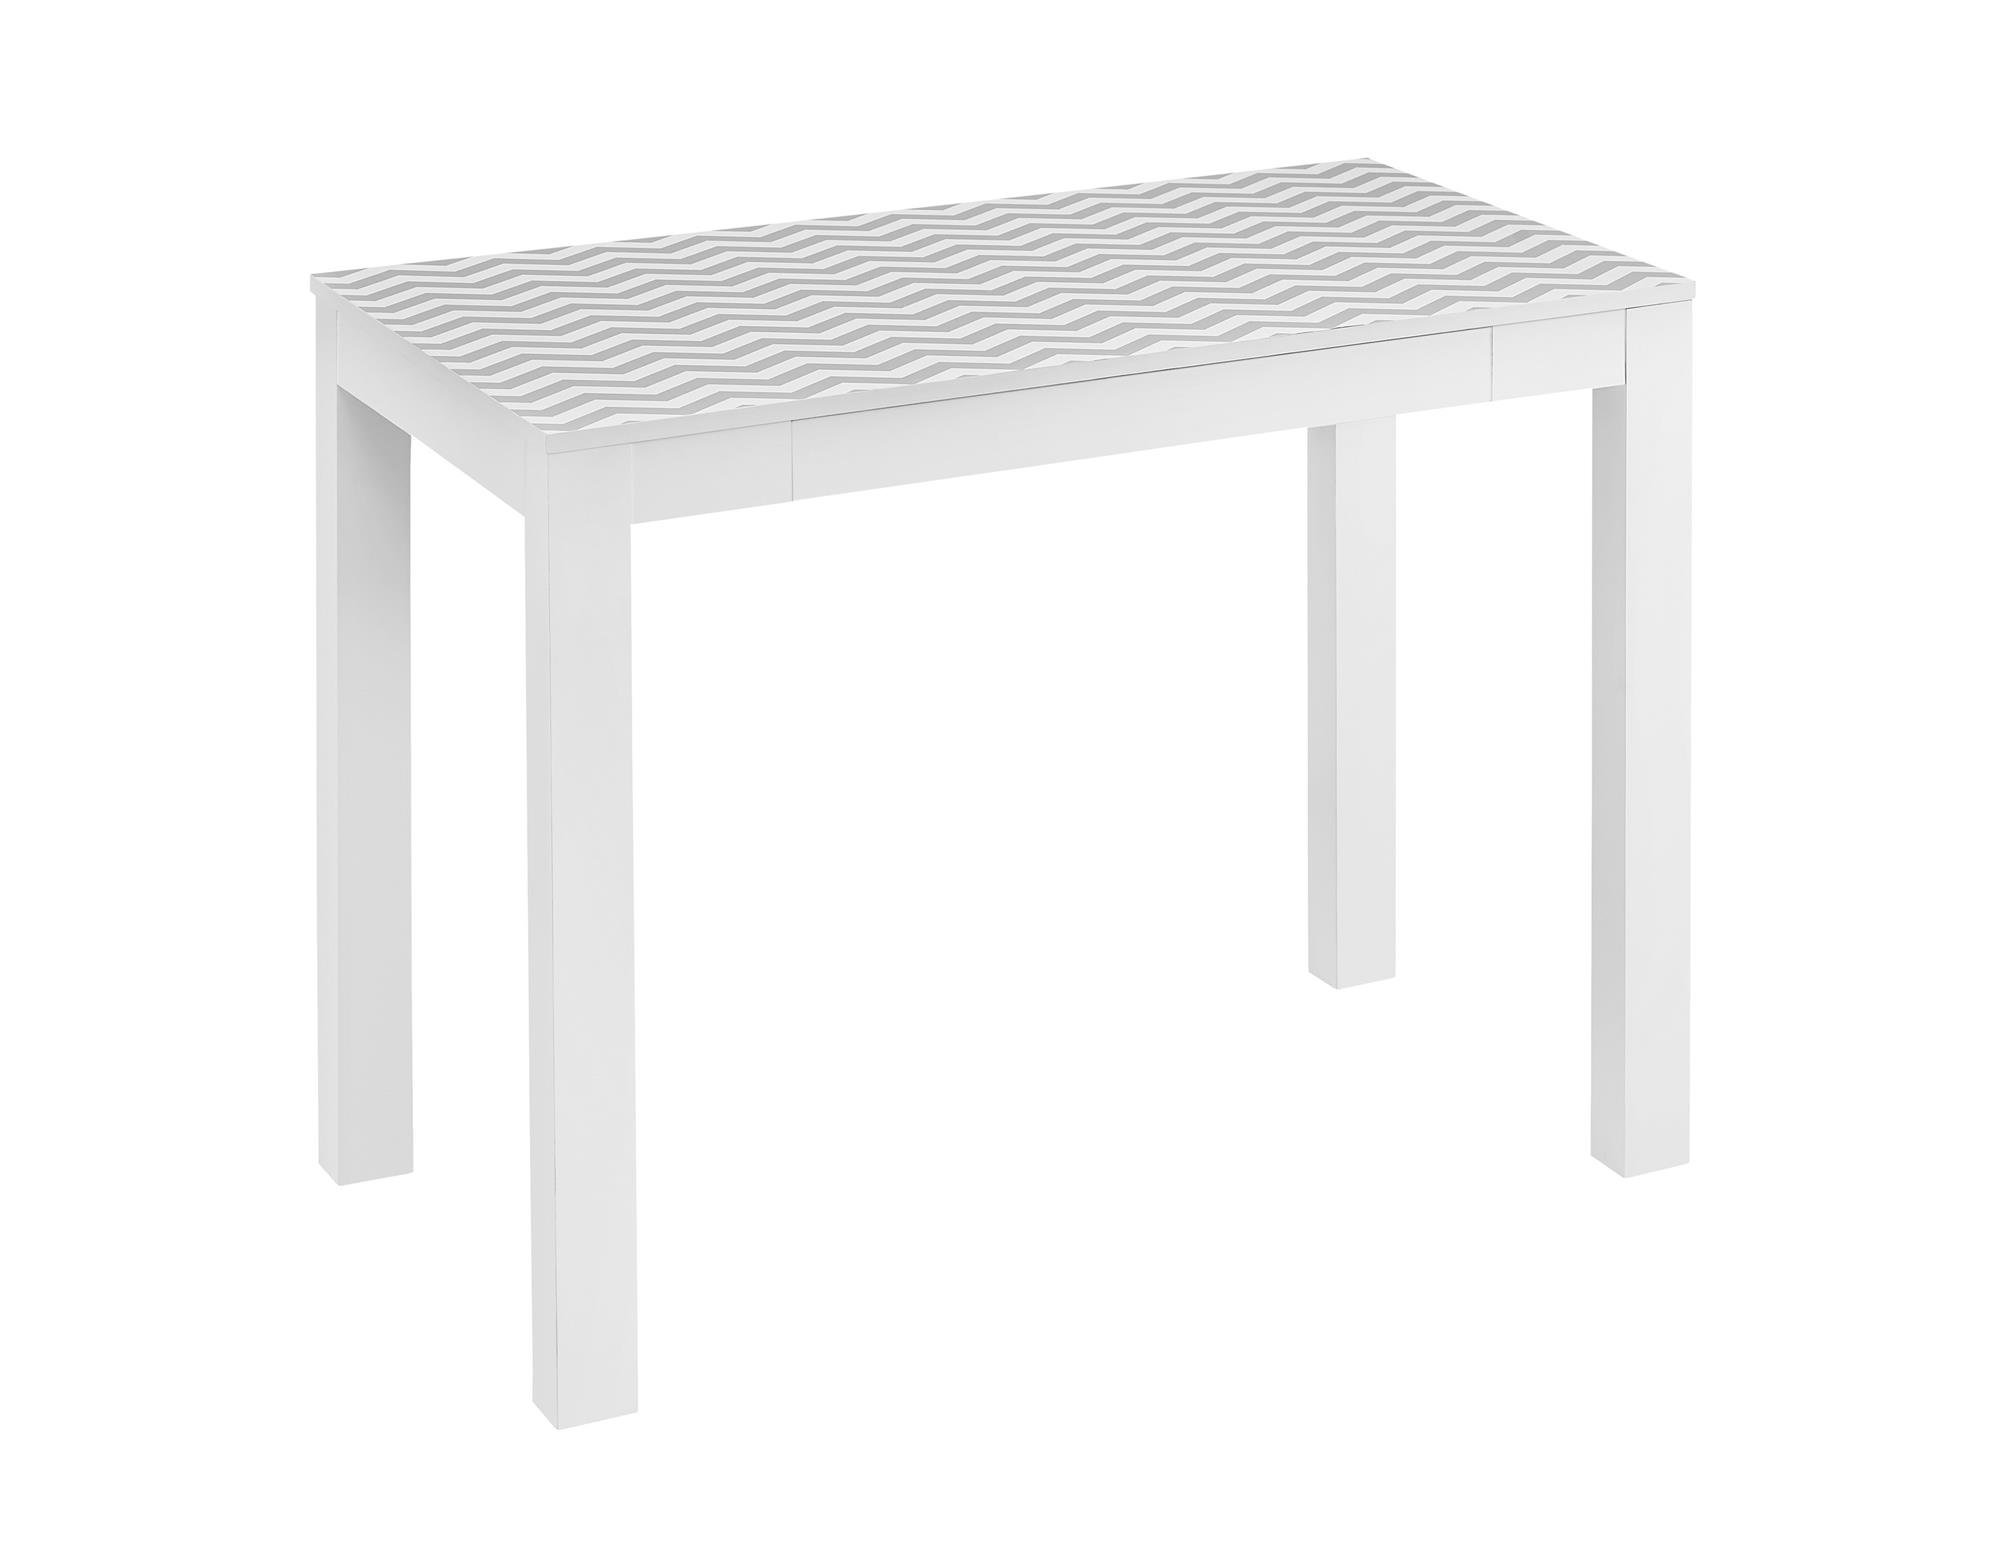 Ameriwood Home Parsons Desk Drawer, White/Gray Chevron by Ameriwood Home (Image #1)